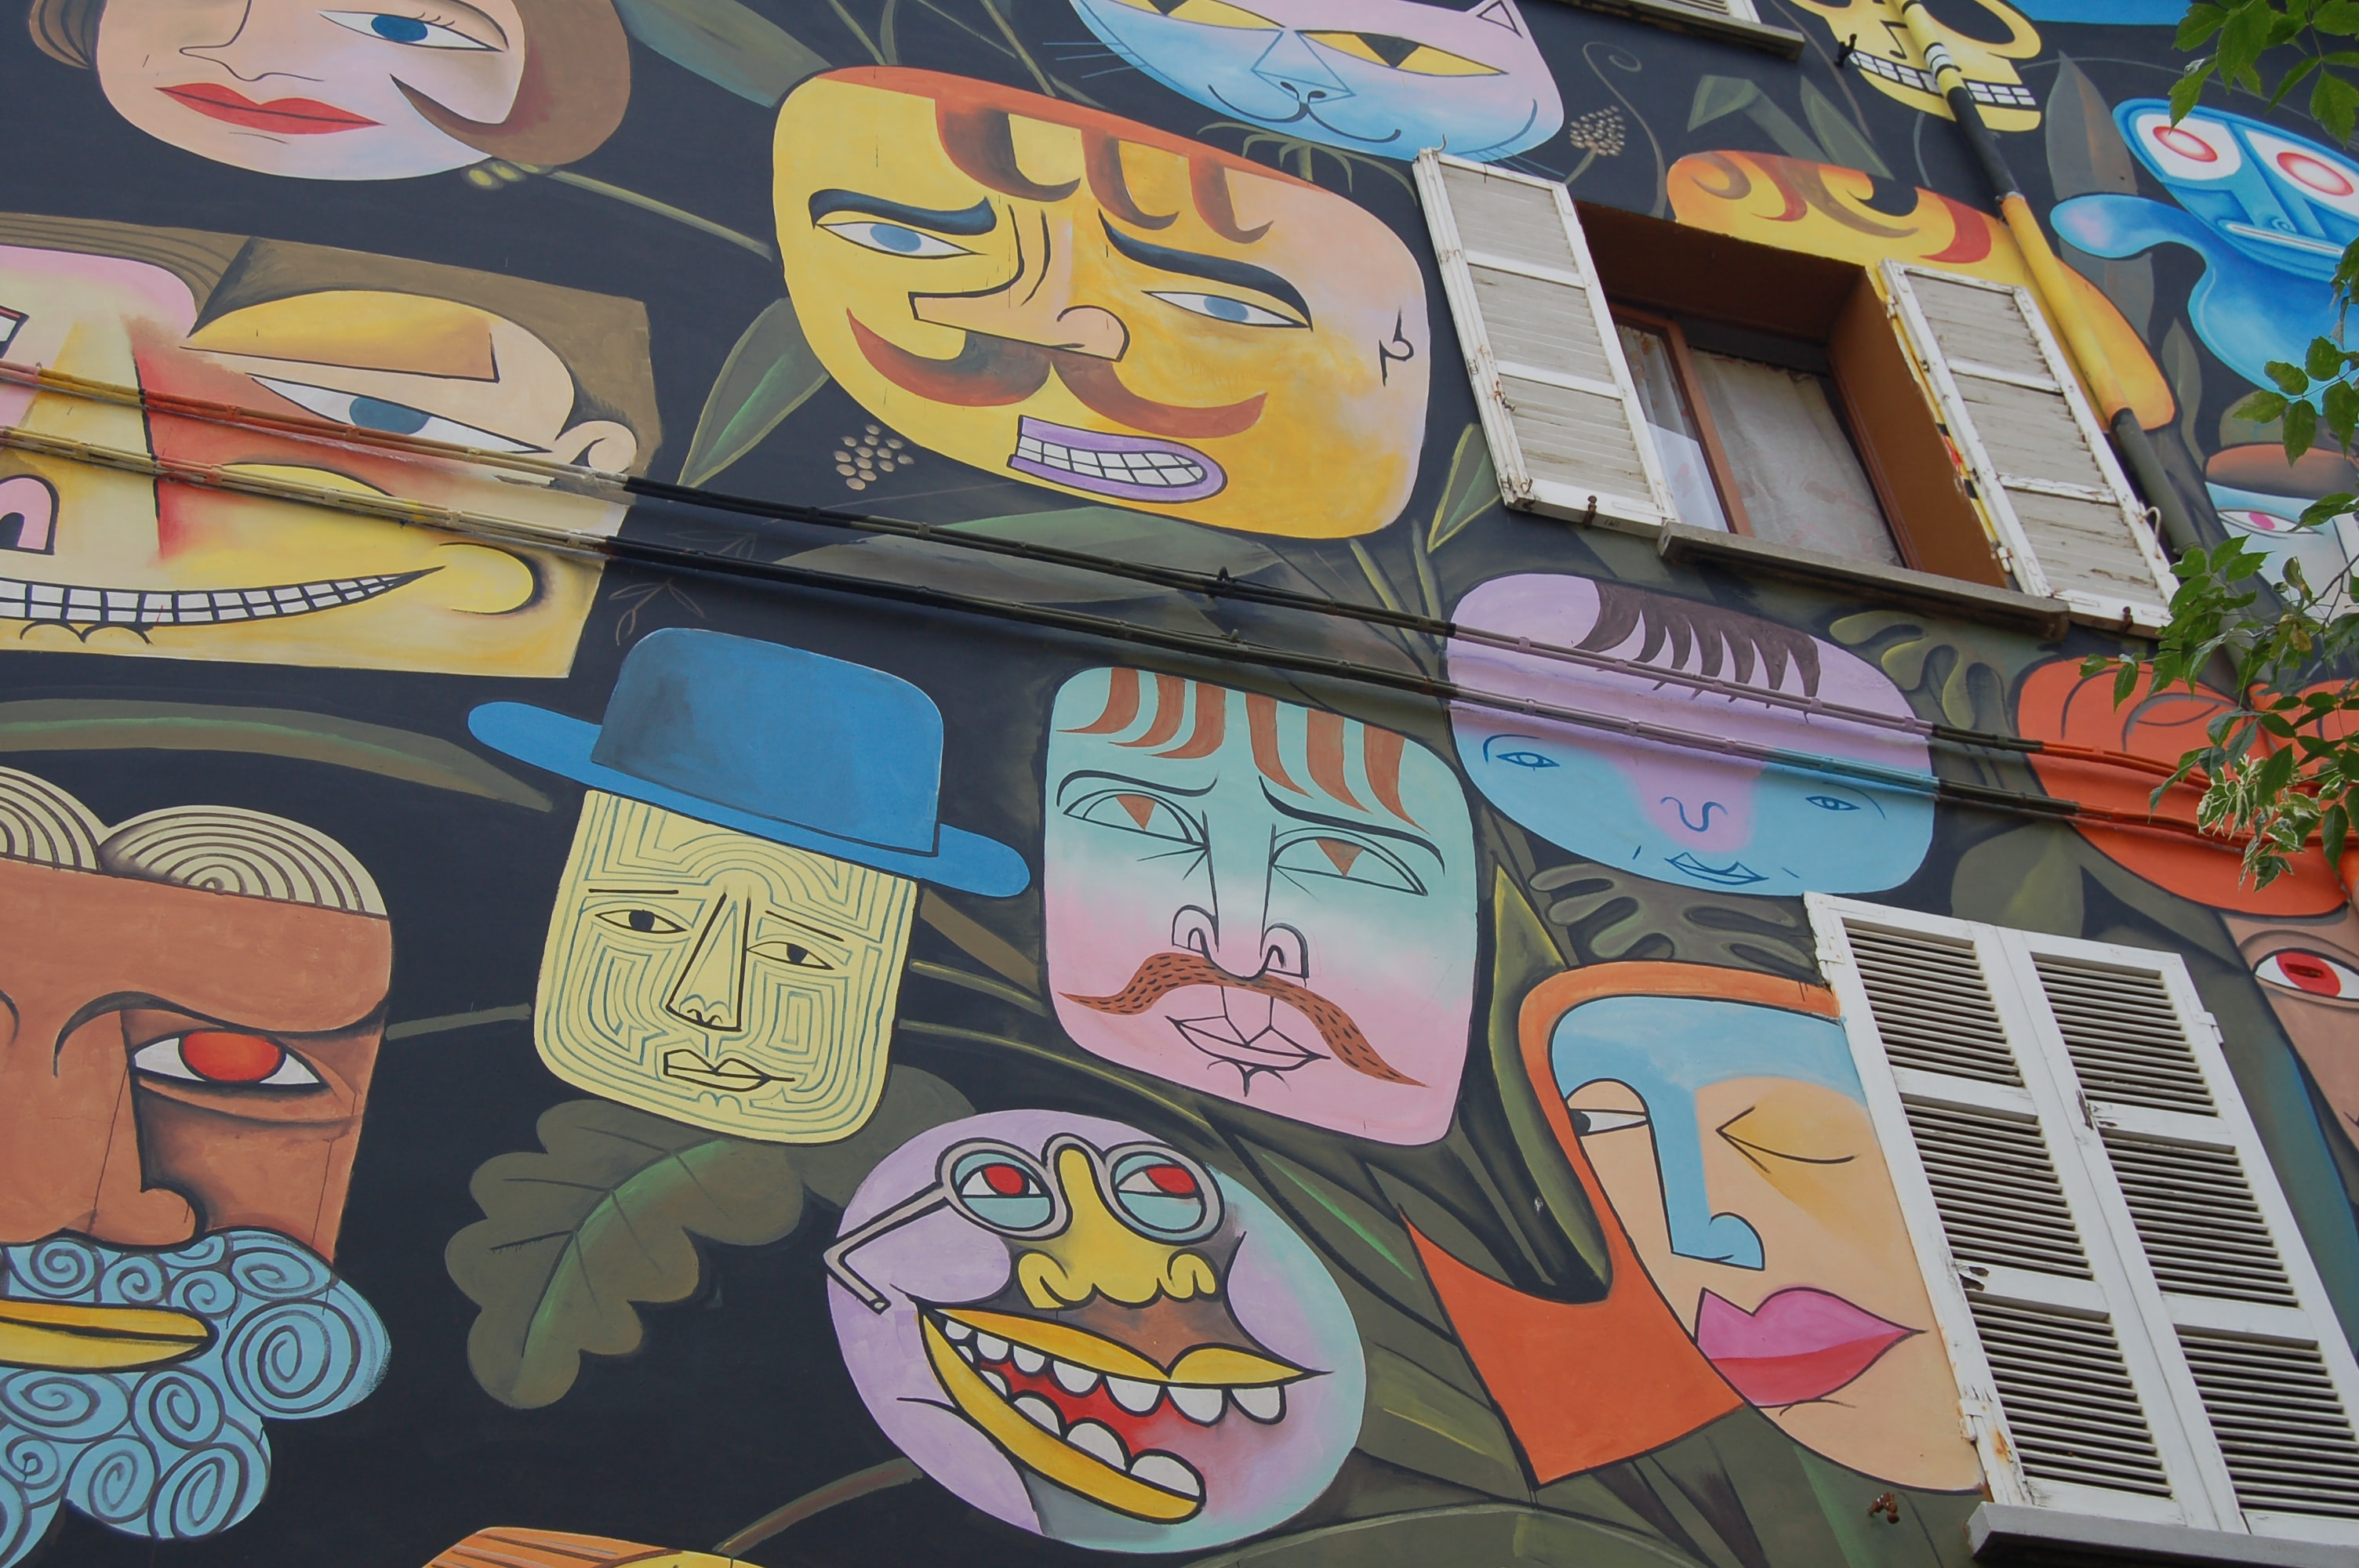 Many colorful faces painted on a building wall.